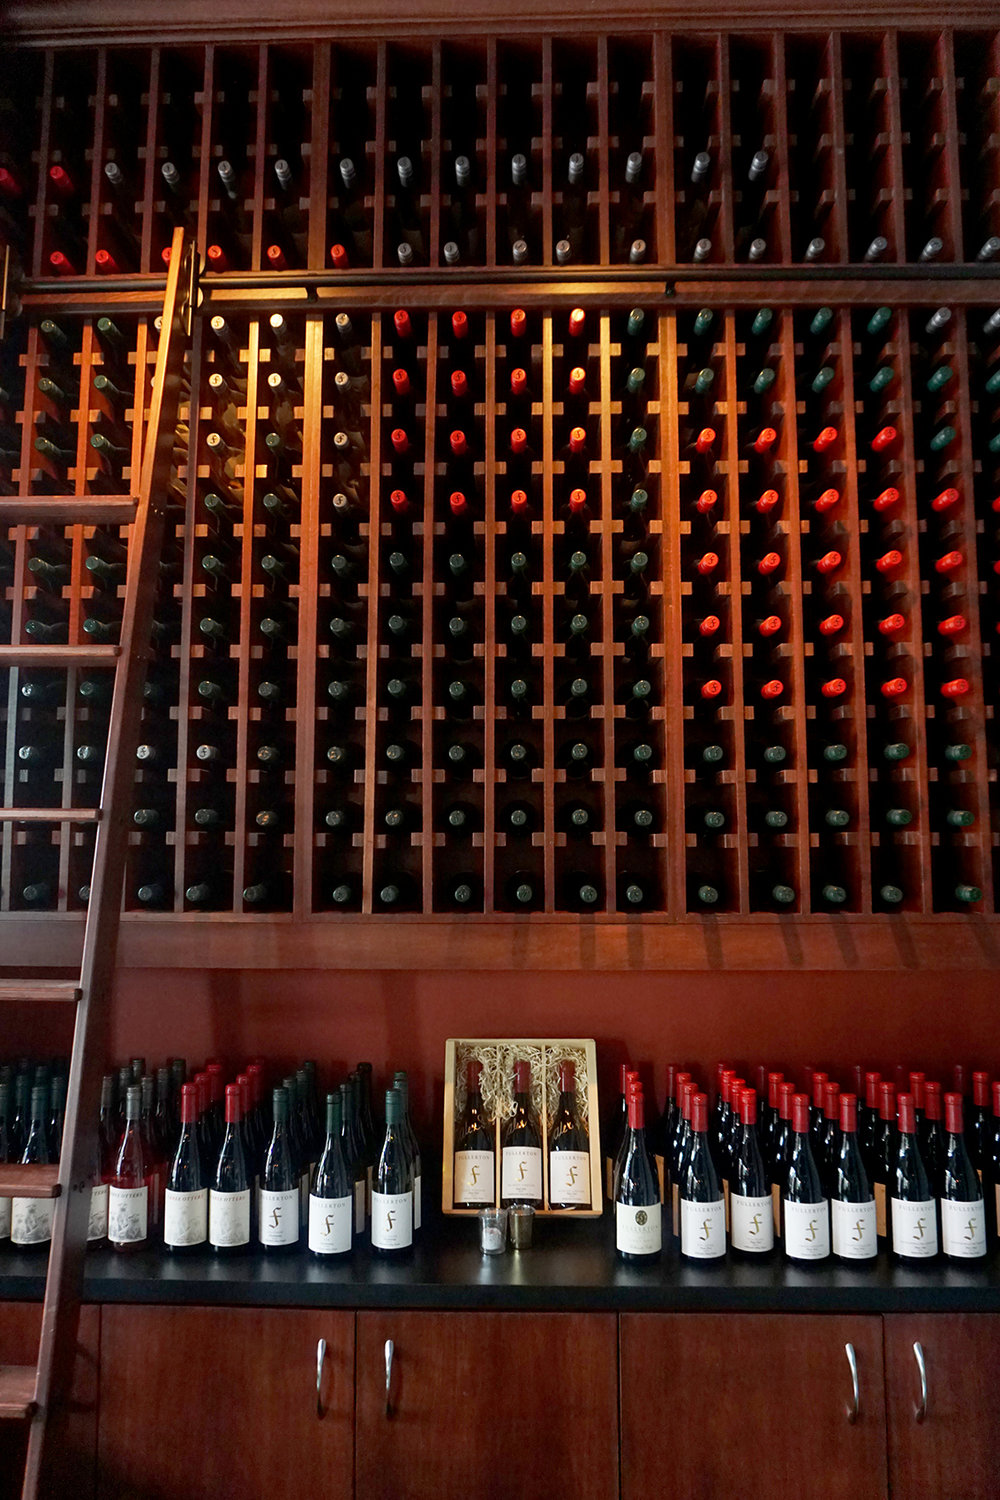 Fullerton-Wines-wine-wall.JPG